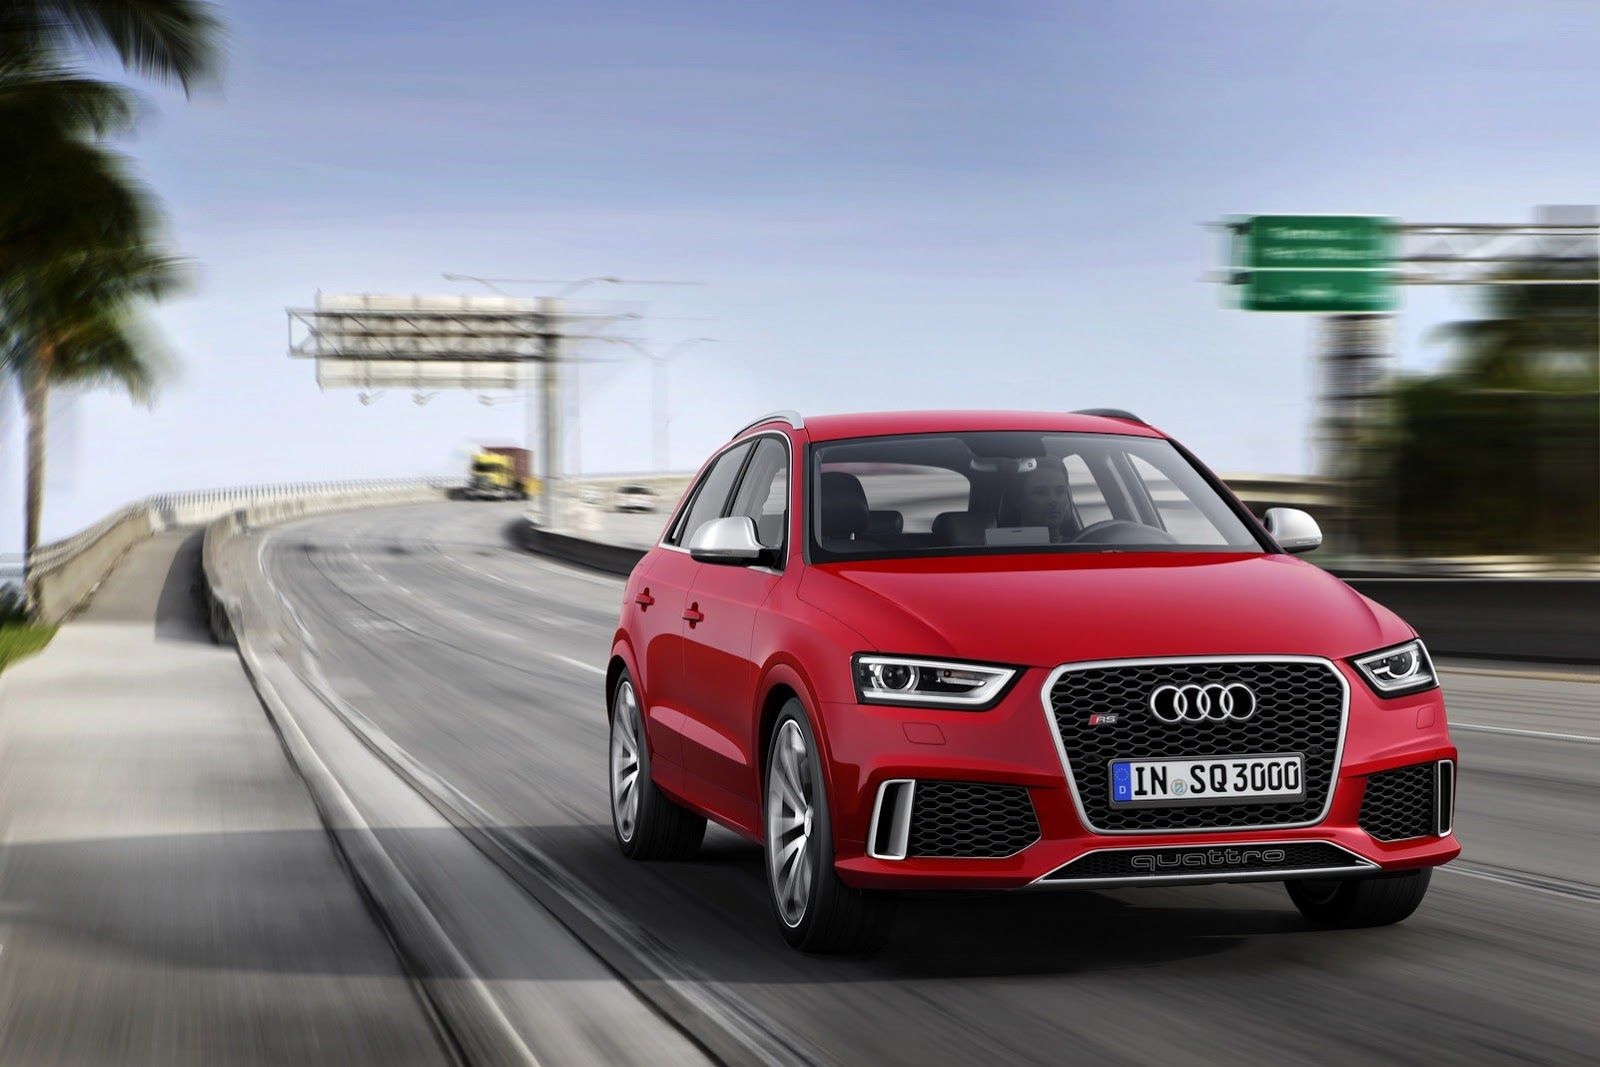 The 2014 audi rs the first rs q model will make its formal debut at the 2013 geneva auto show